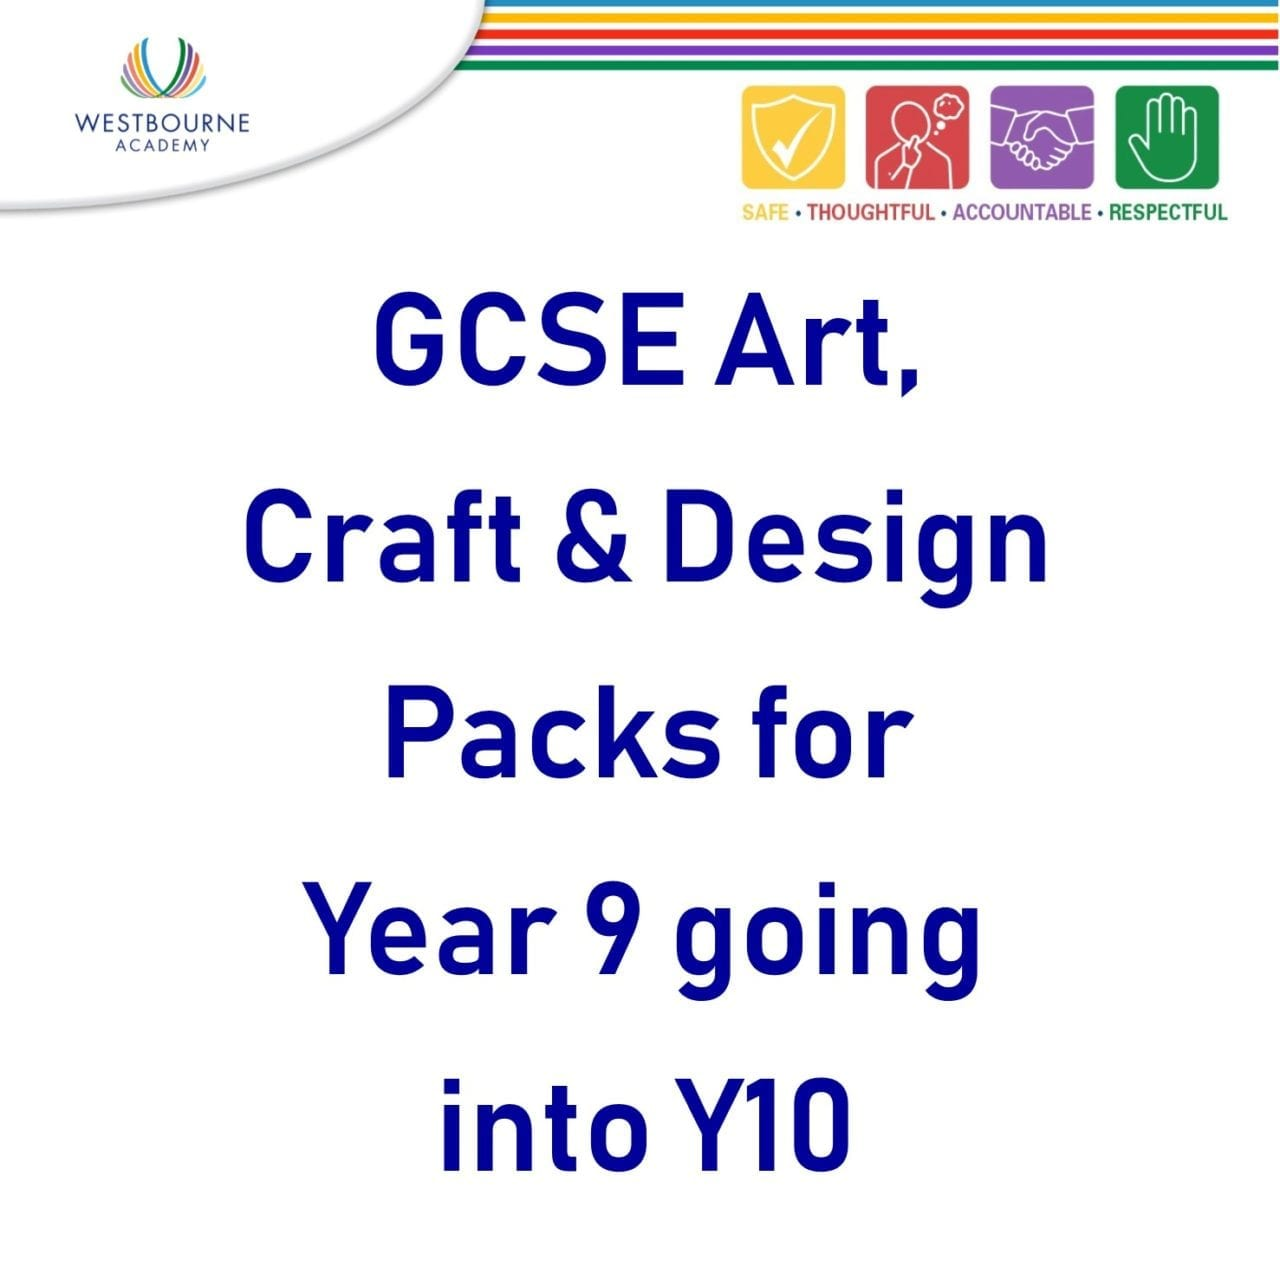 GCSE Art, Craft & Design Packs for Y9 going into Y10